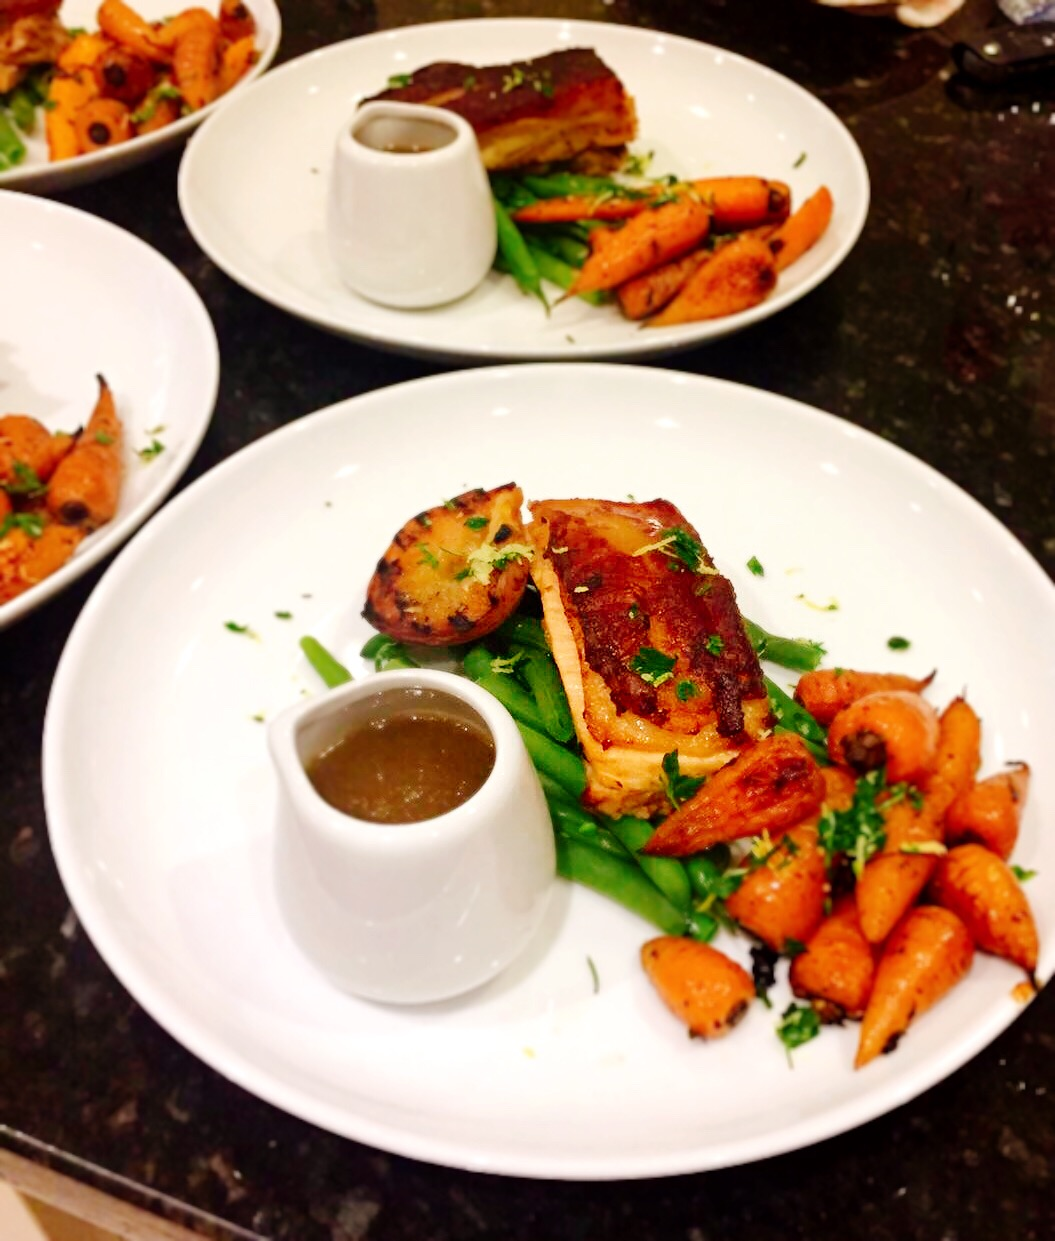 cider marinated pork belly with thyme roasasted carrots, green beans, salt and pepper roasted peach, gremolata and cider sauce